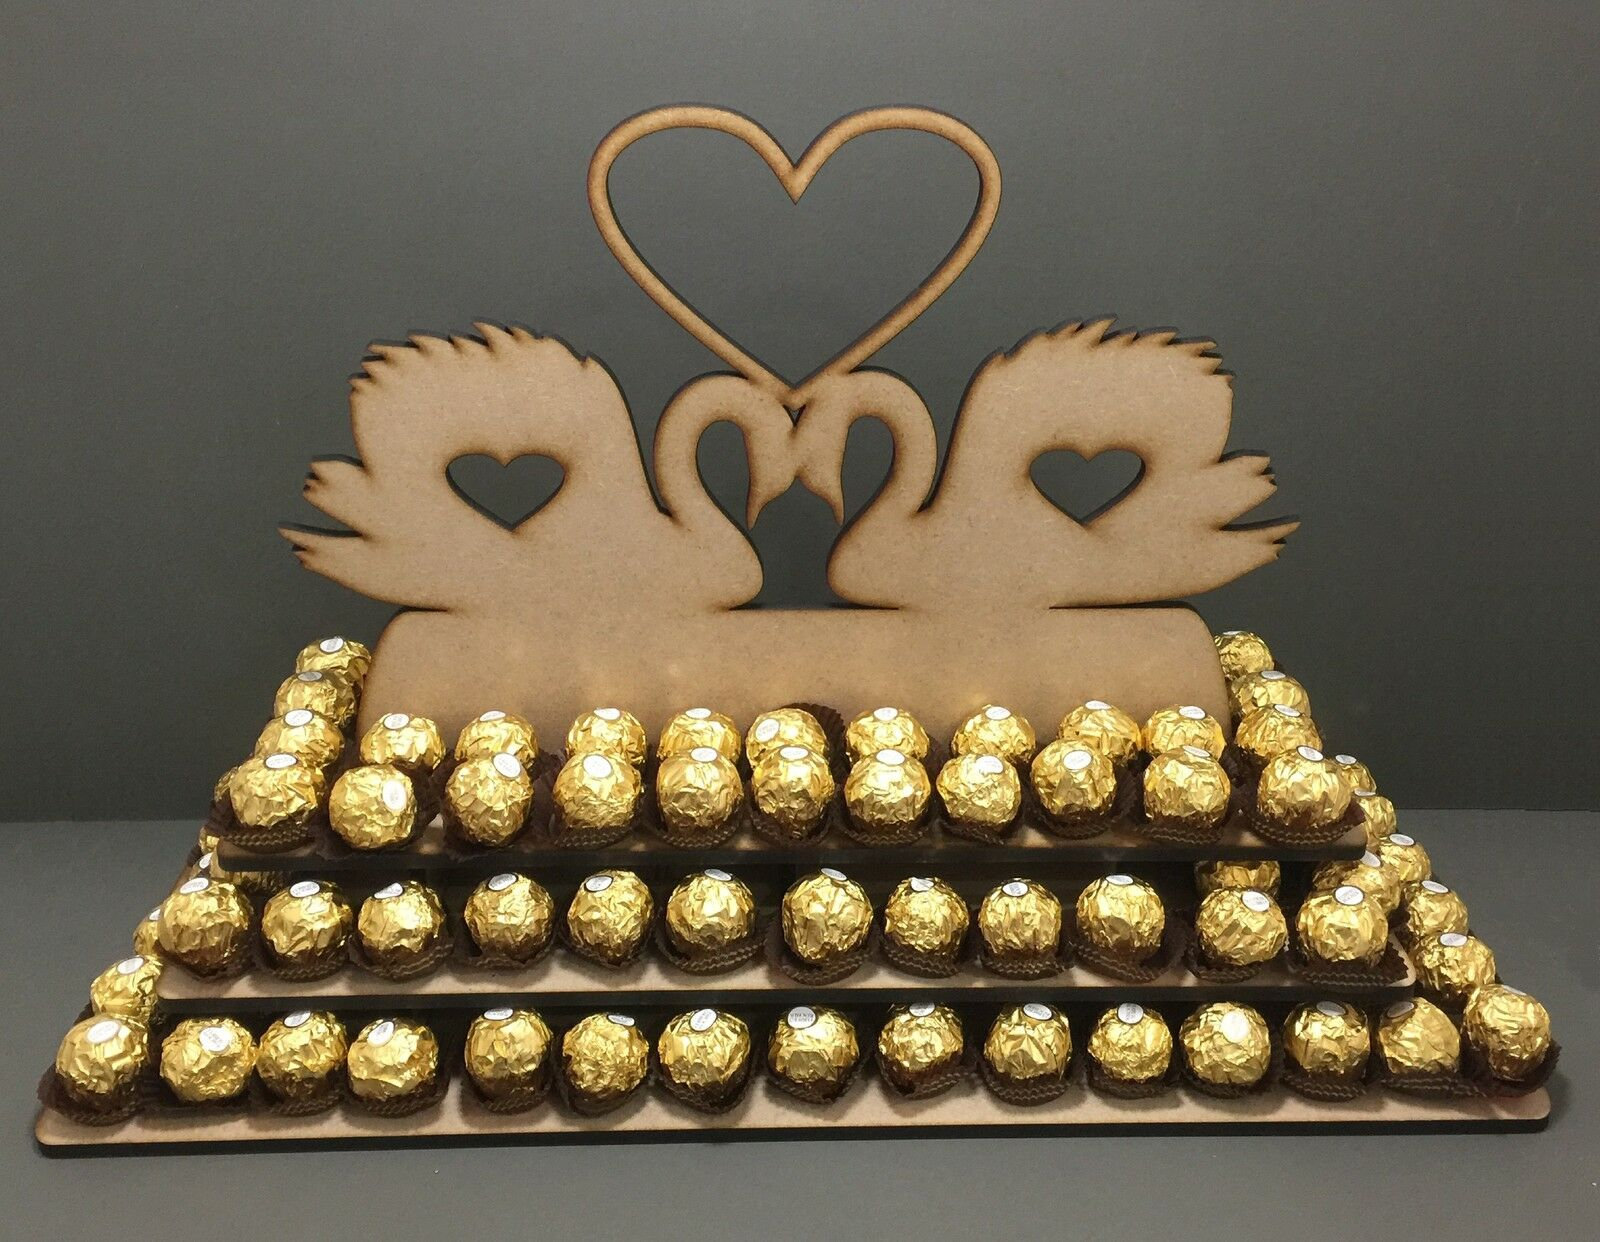 Y22 150x Chocolate Pyramid Ferrero Rocher Wedding Centre Display Stand Mr & Mrs